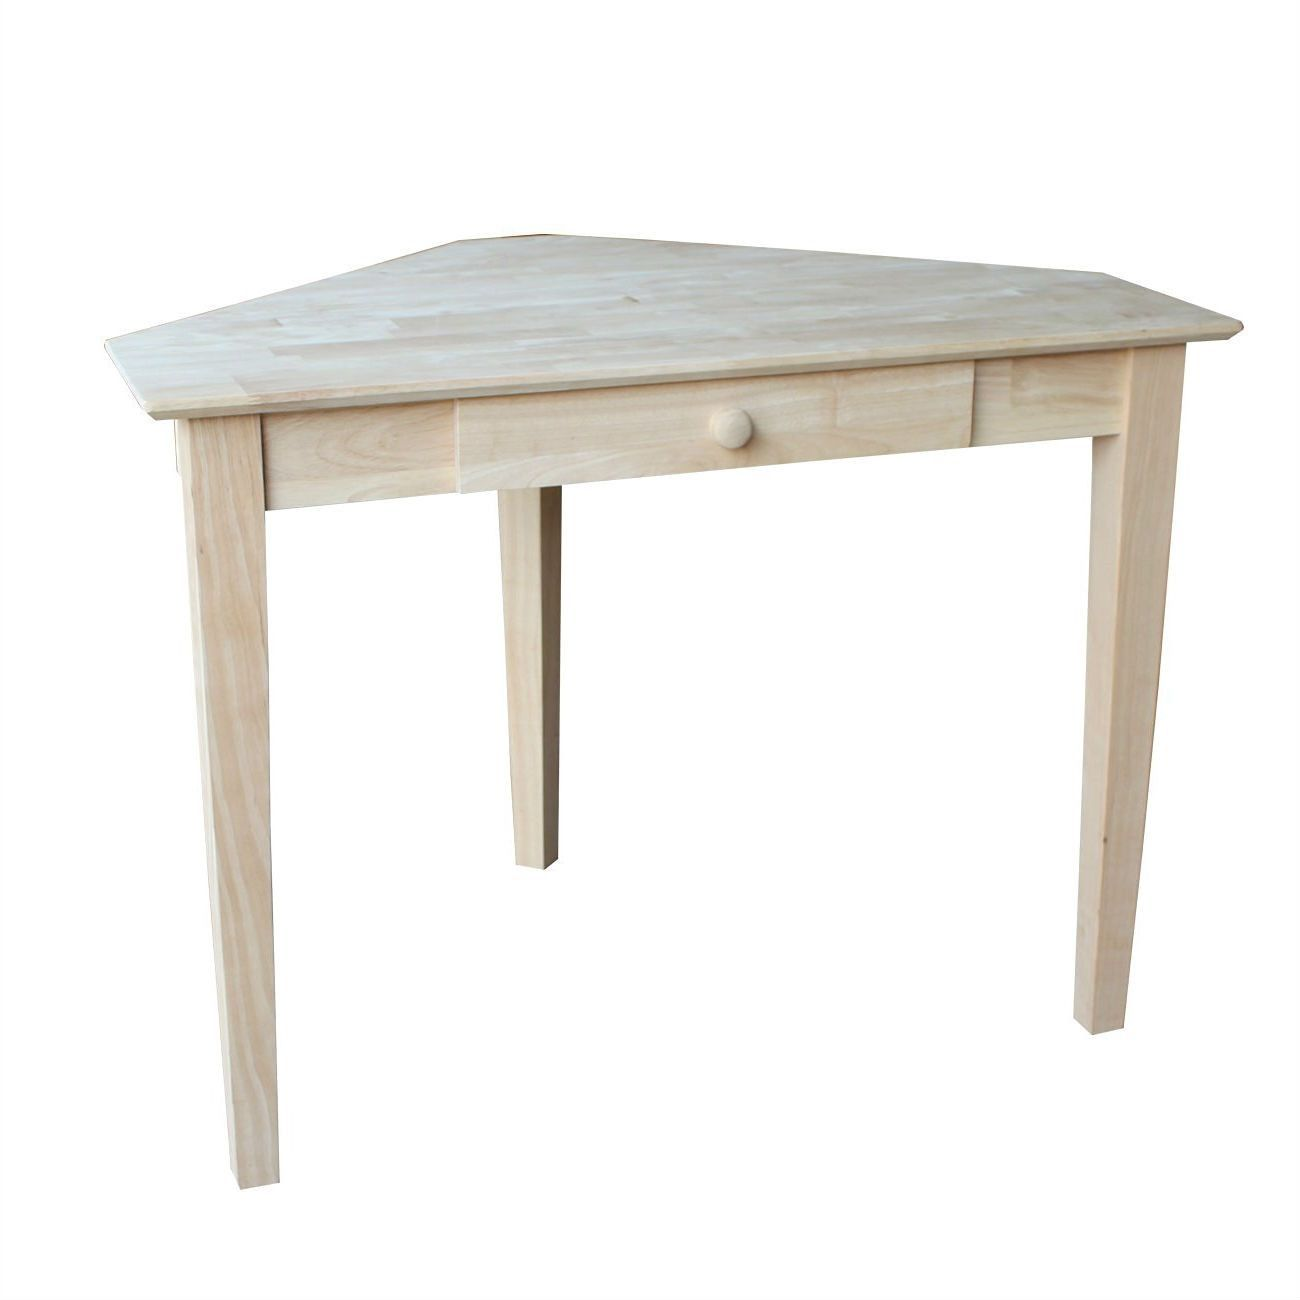 Unfinished wood corner desk laptop computer writing table with